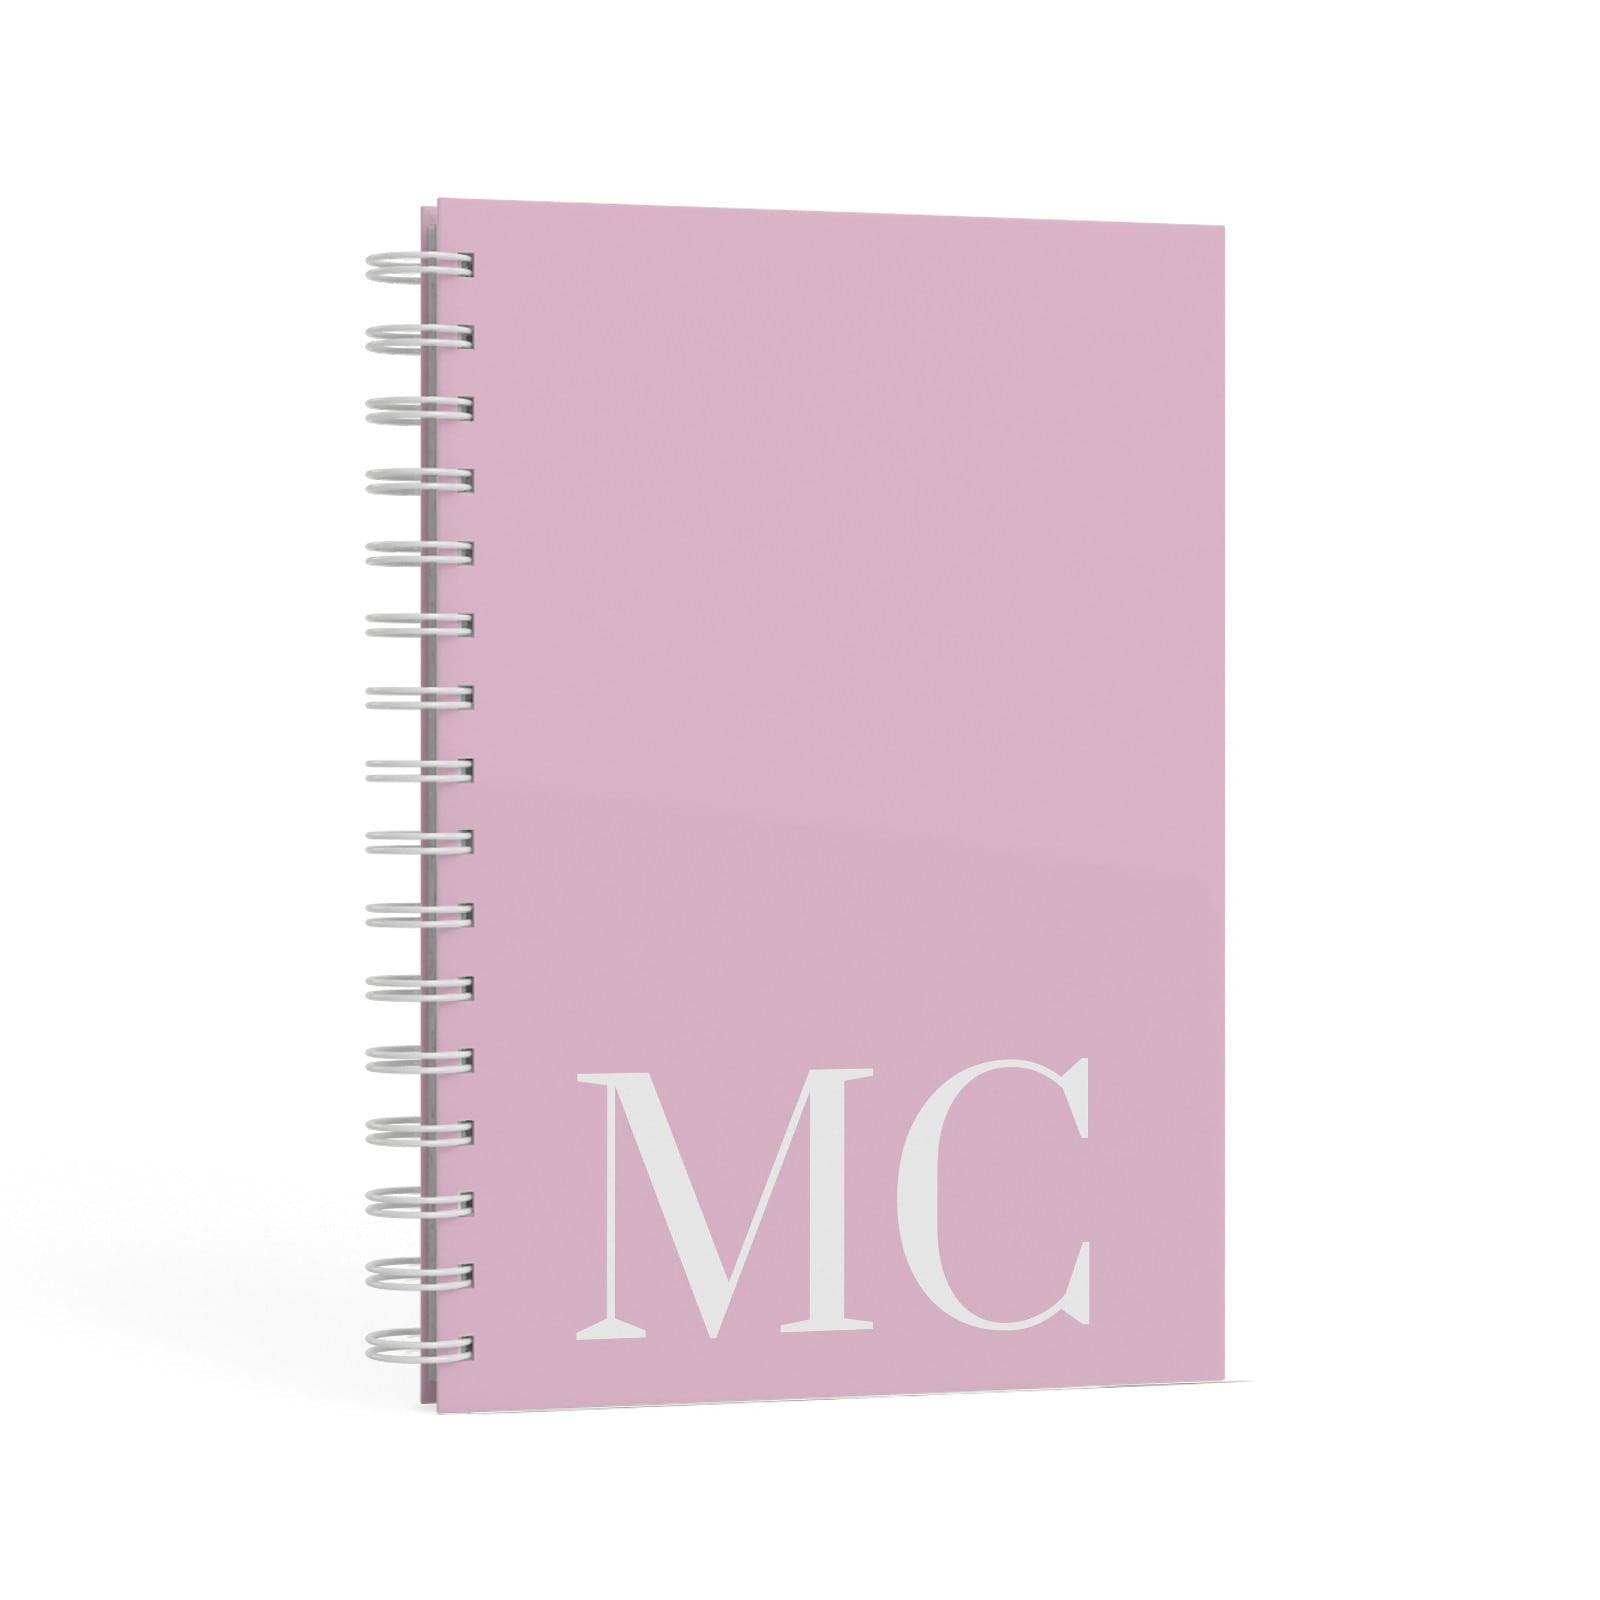 Initials Personalised 2 A5 Hardcover Notebook Second Side View